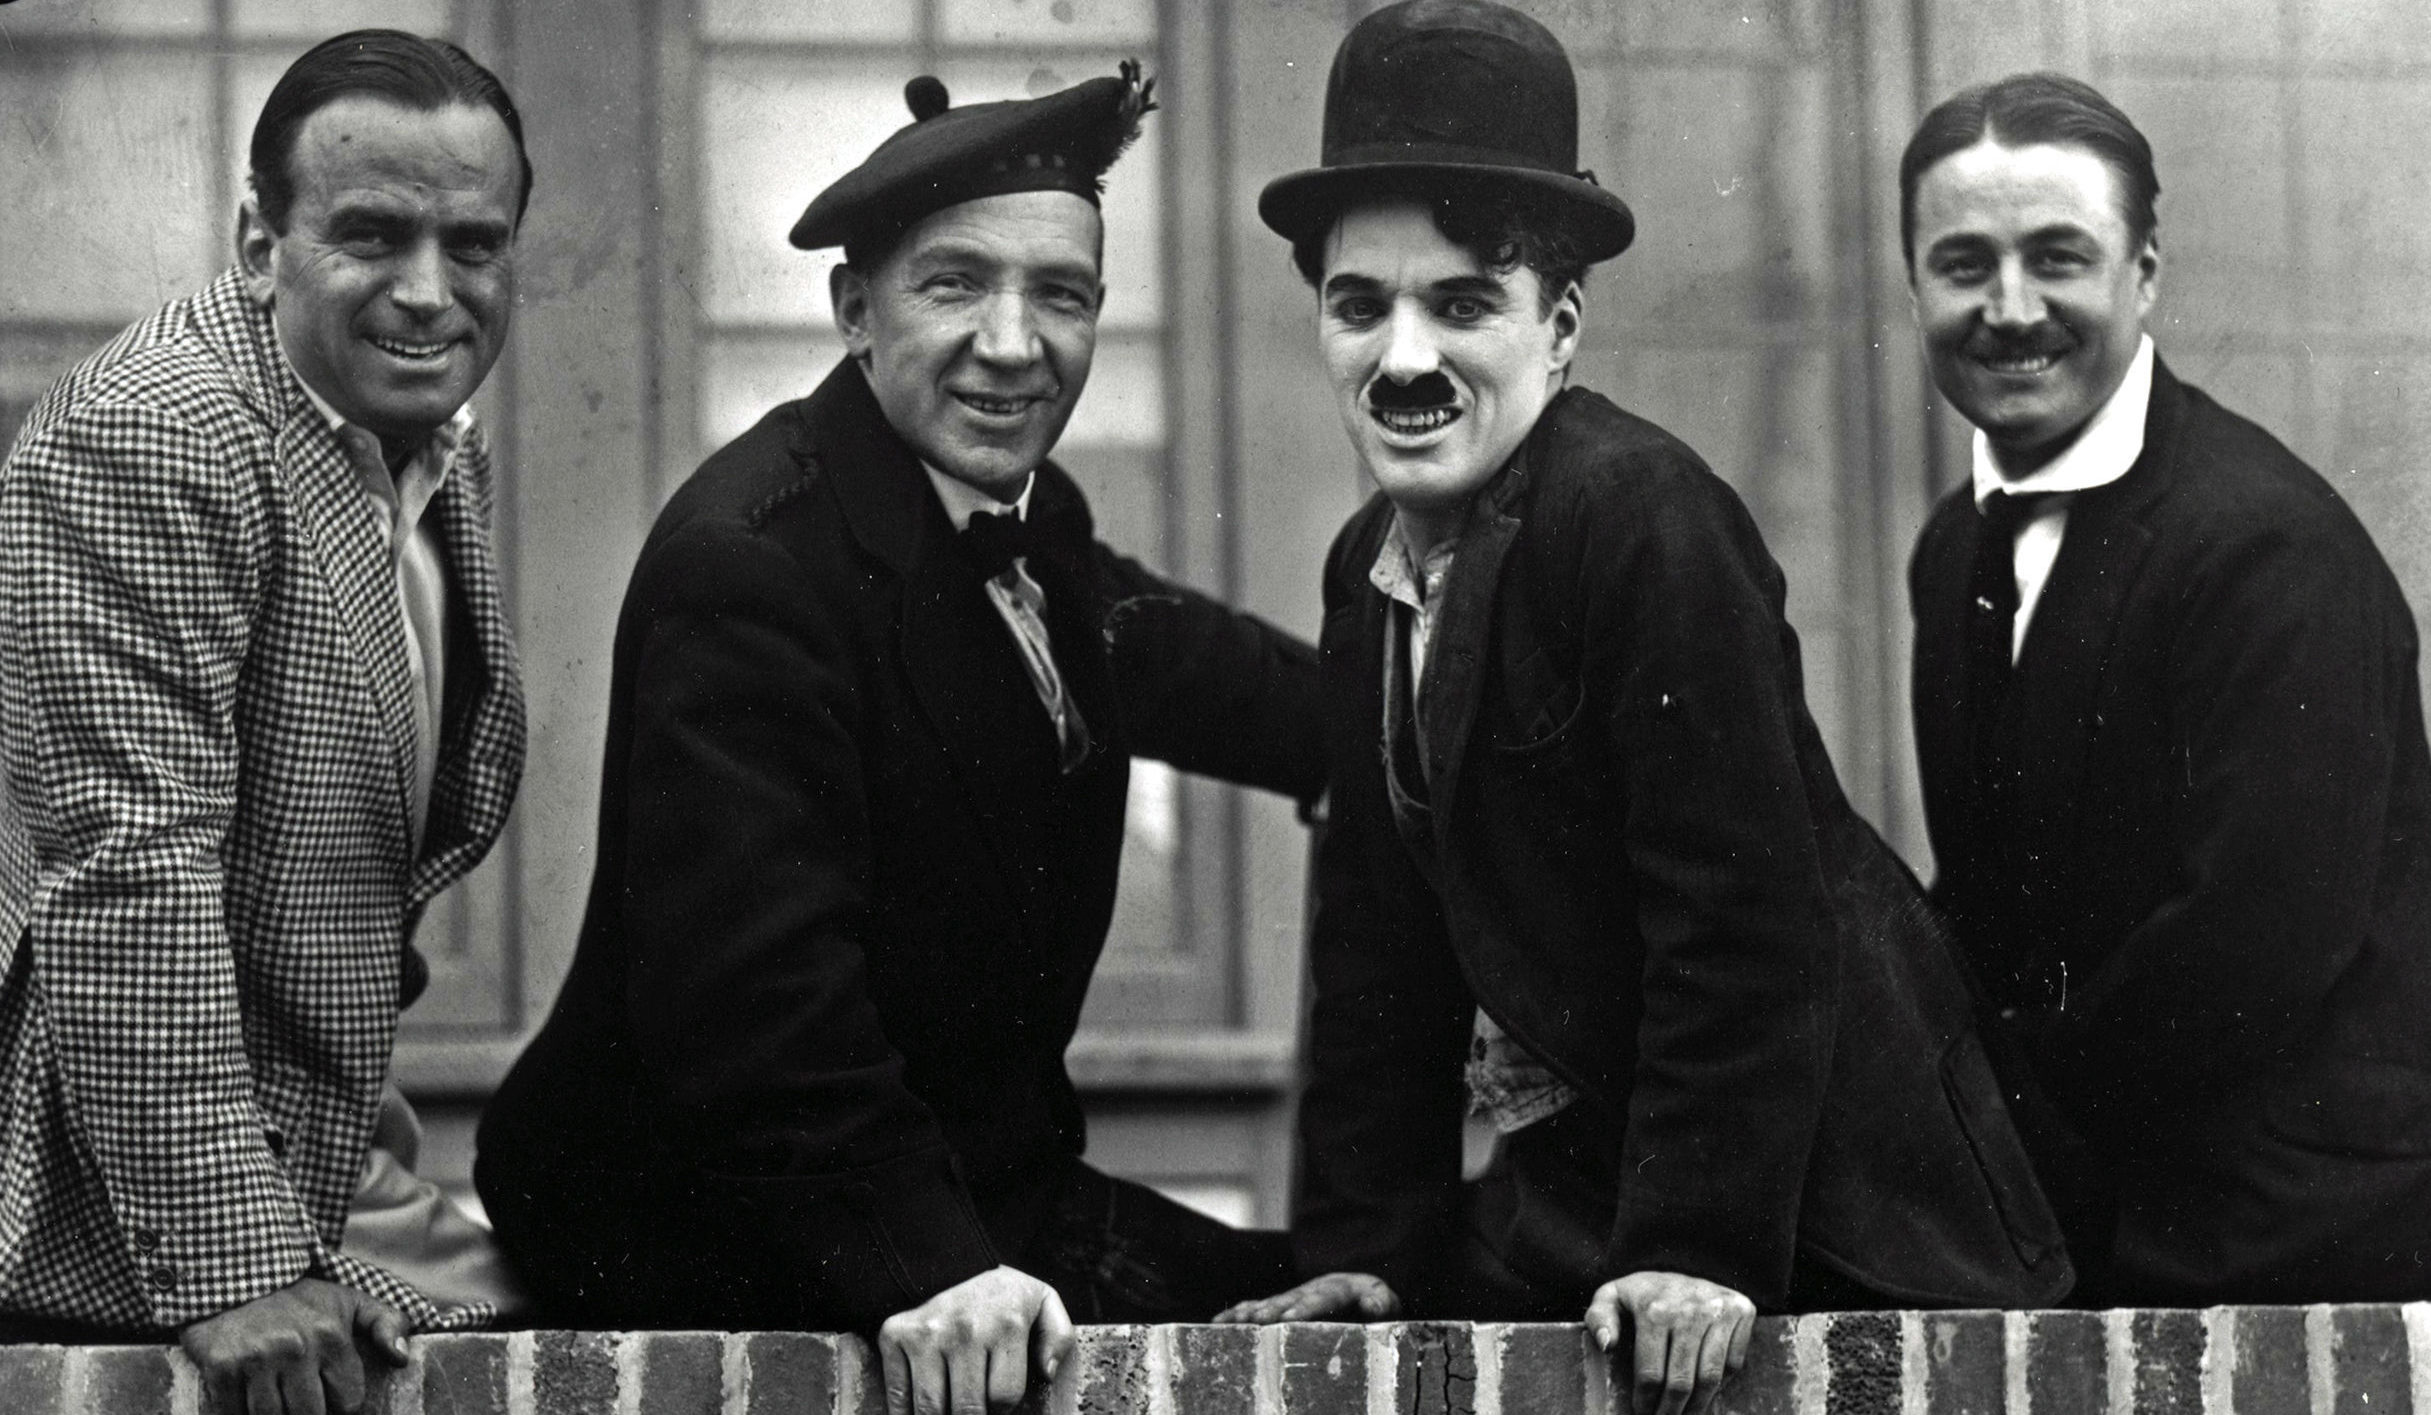 Sir Harry Lauder (second right) with Sir Charlie Chaplin (second left), as a rare screening of the moment they met on film is to be shown at a new comedy film festival (Roy Export Company/PA Wire)